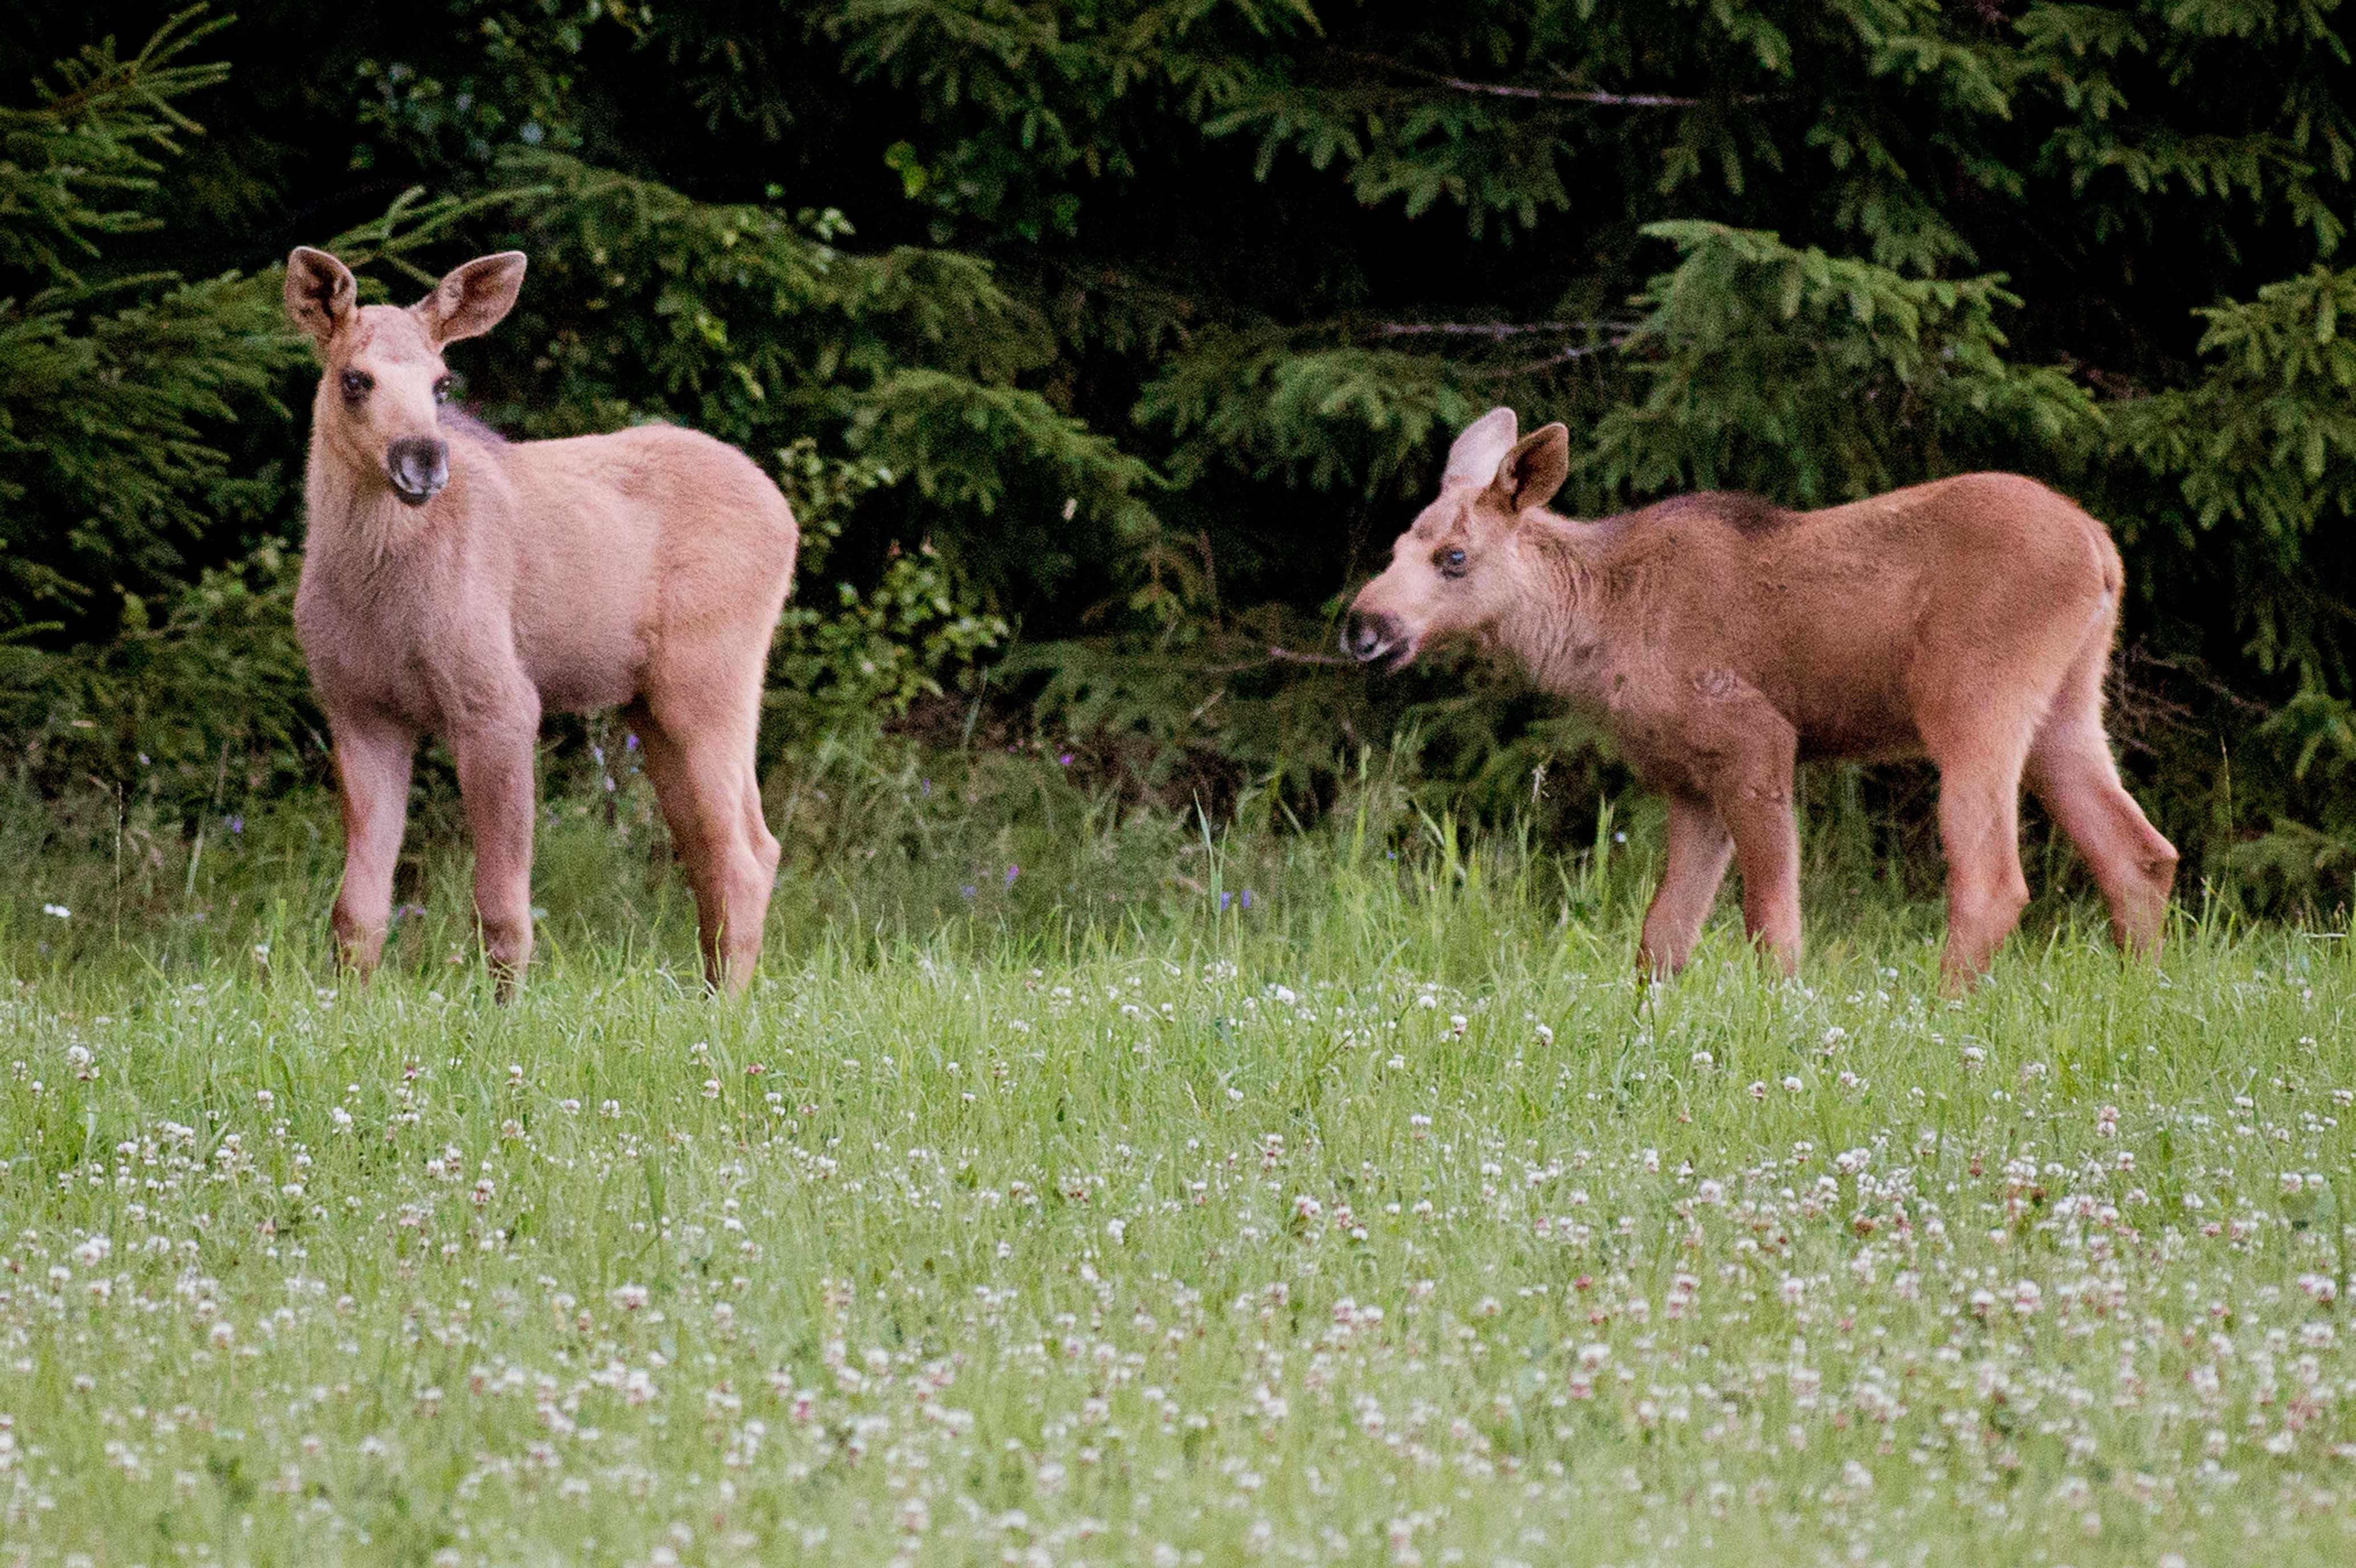 Two moose calves on a field